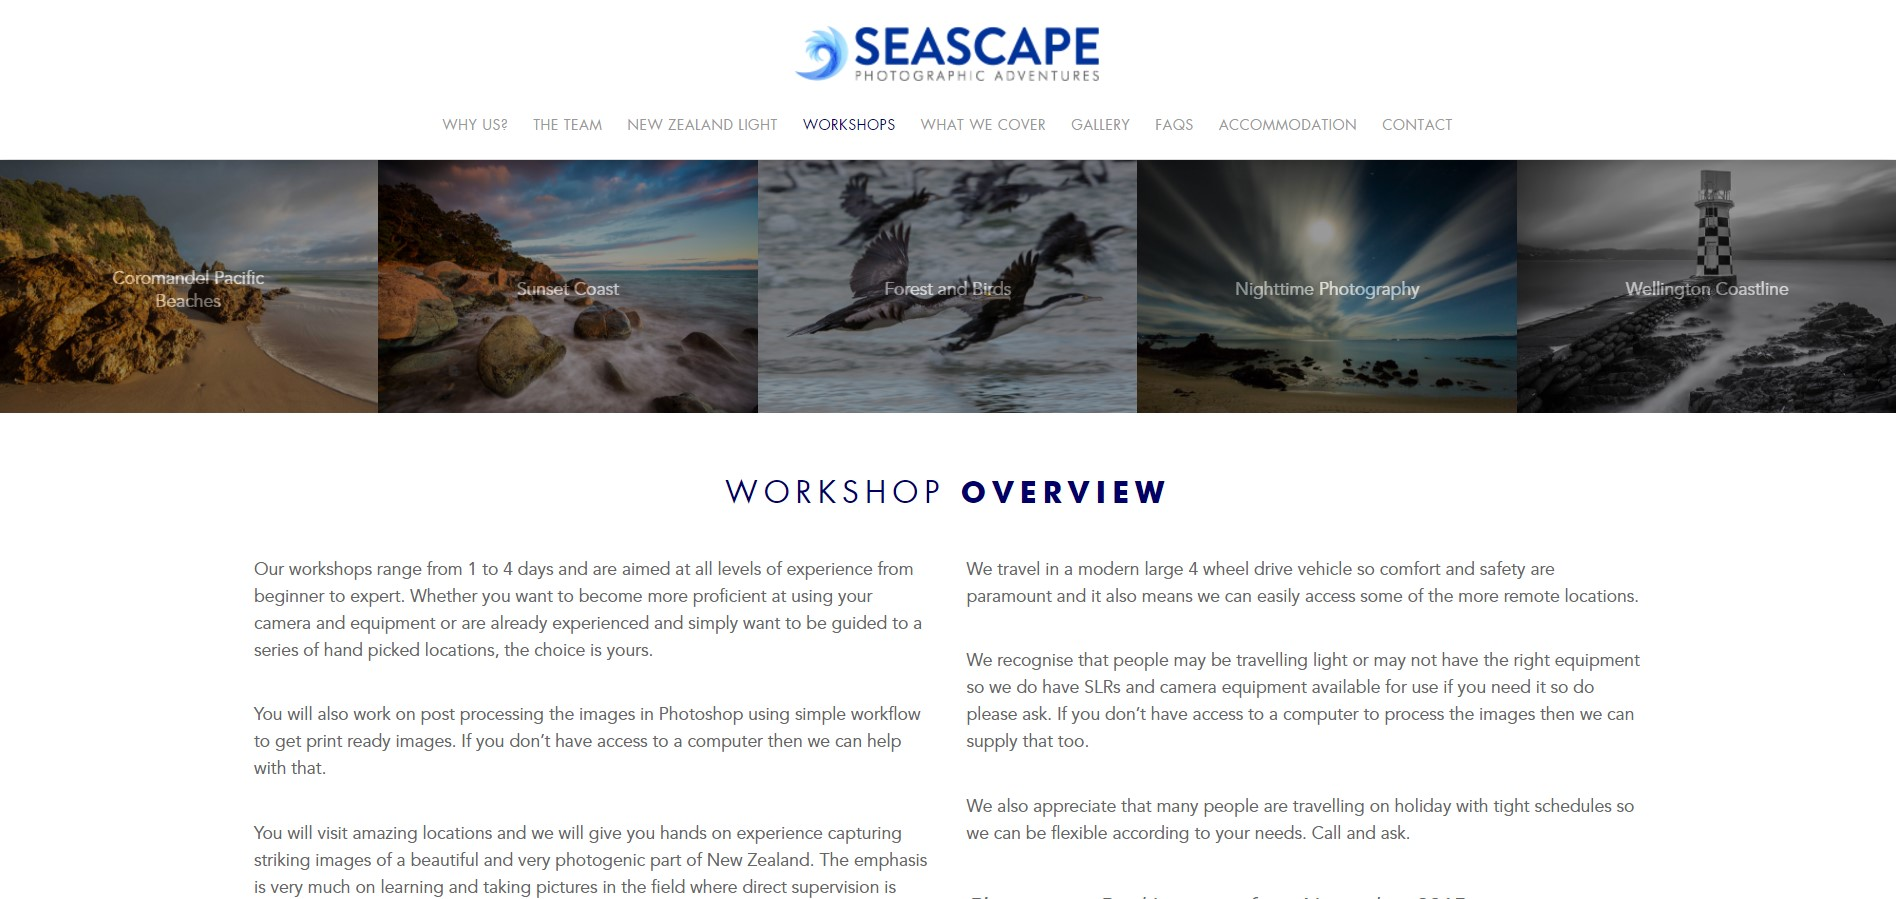 seascape_workshop